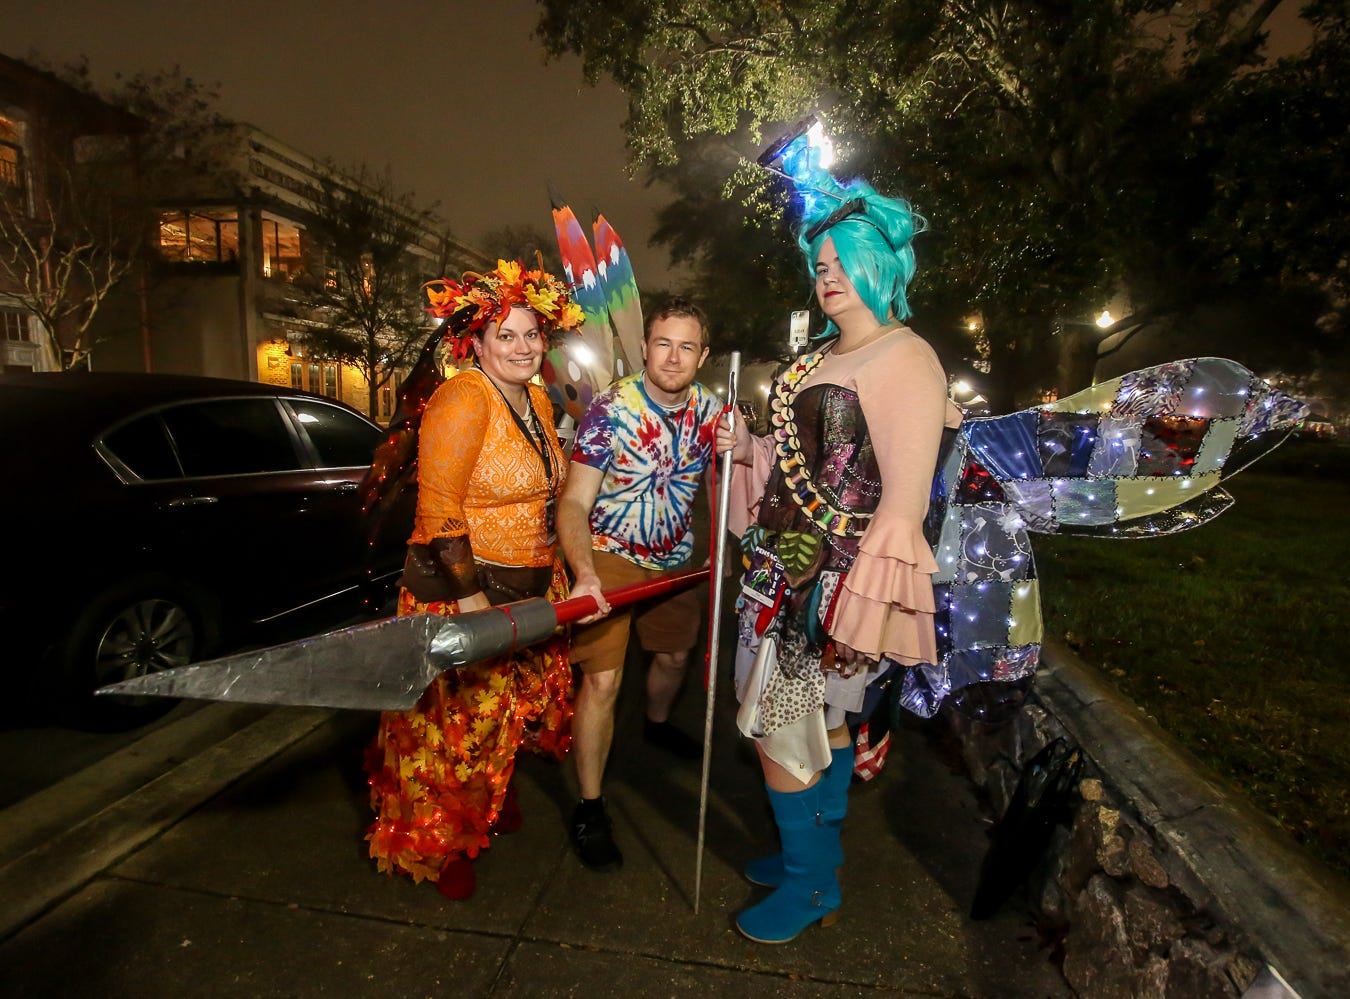 Pensacon fans gathered at Gallery Night in downtown Pensacola during the first night of the annual Comic Con convention on Friday, Feb. 23, 2019.